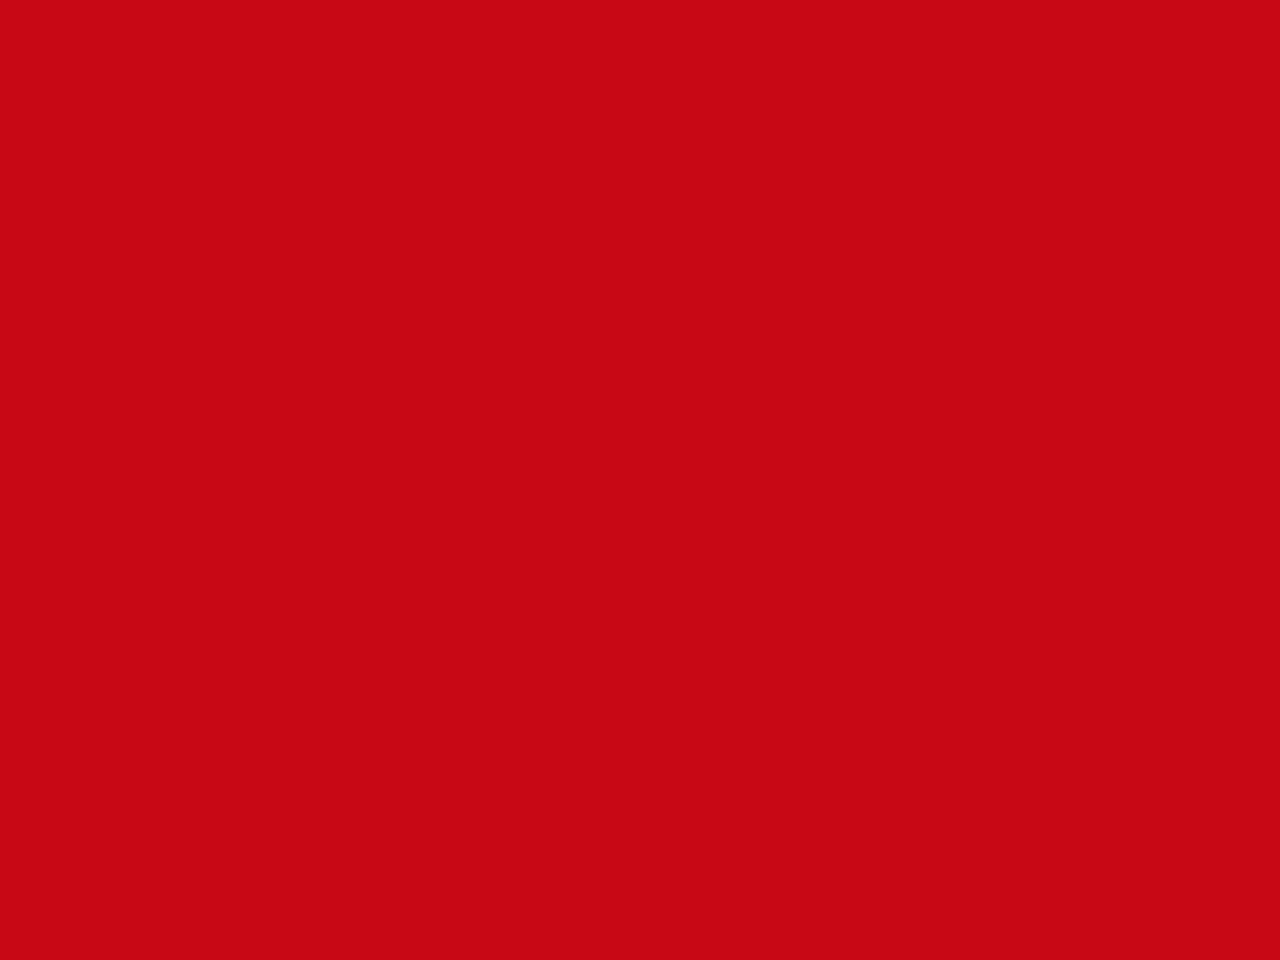 1280x960 Venetian Red Solid Color Background